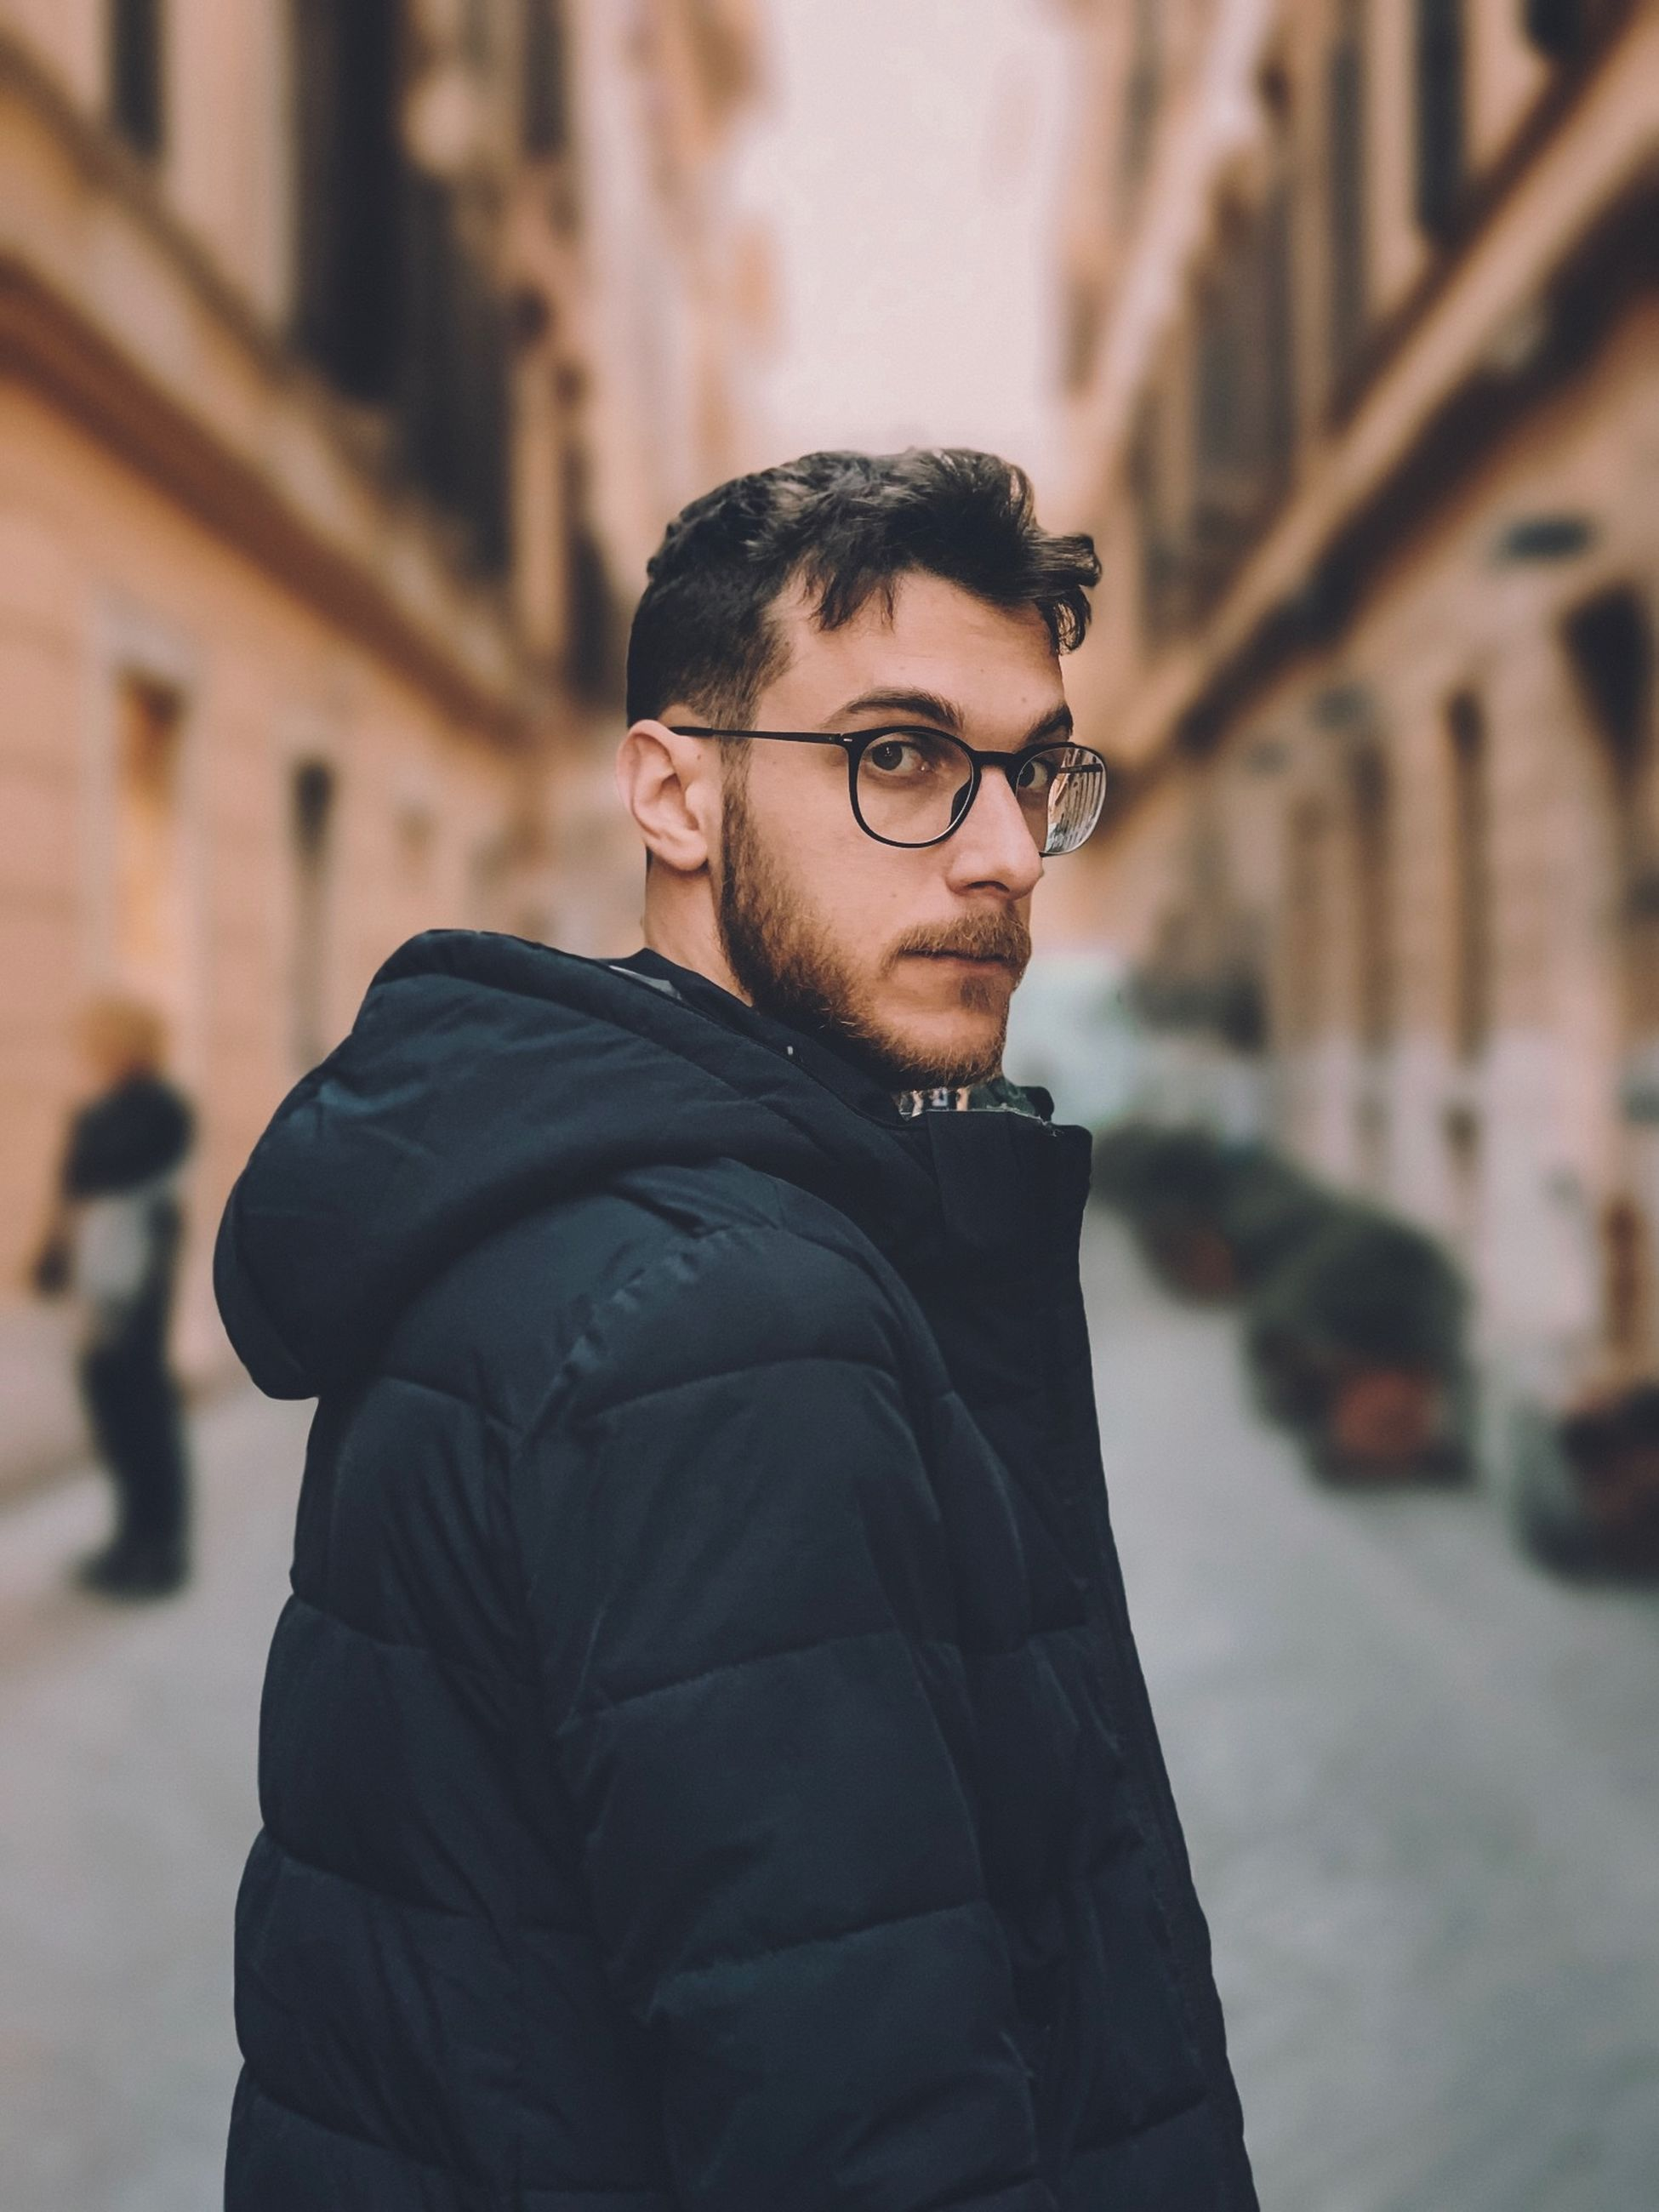 one person, eyeglasses, glasses, focus on foreground, young adult, architecture, standing, real people, built structure, clothing, waist up, men, lifestyles, looking at camera, young men, side view, portrait, city